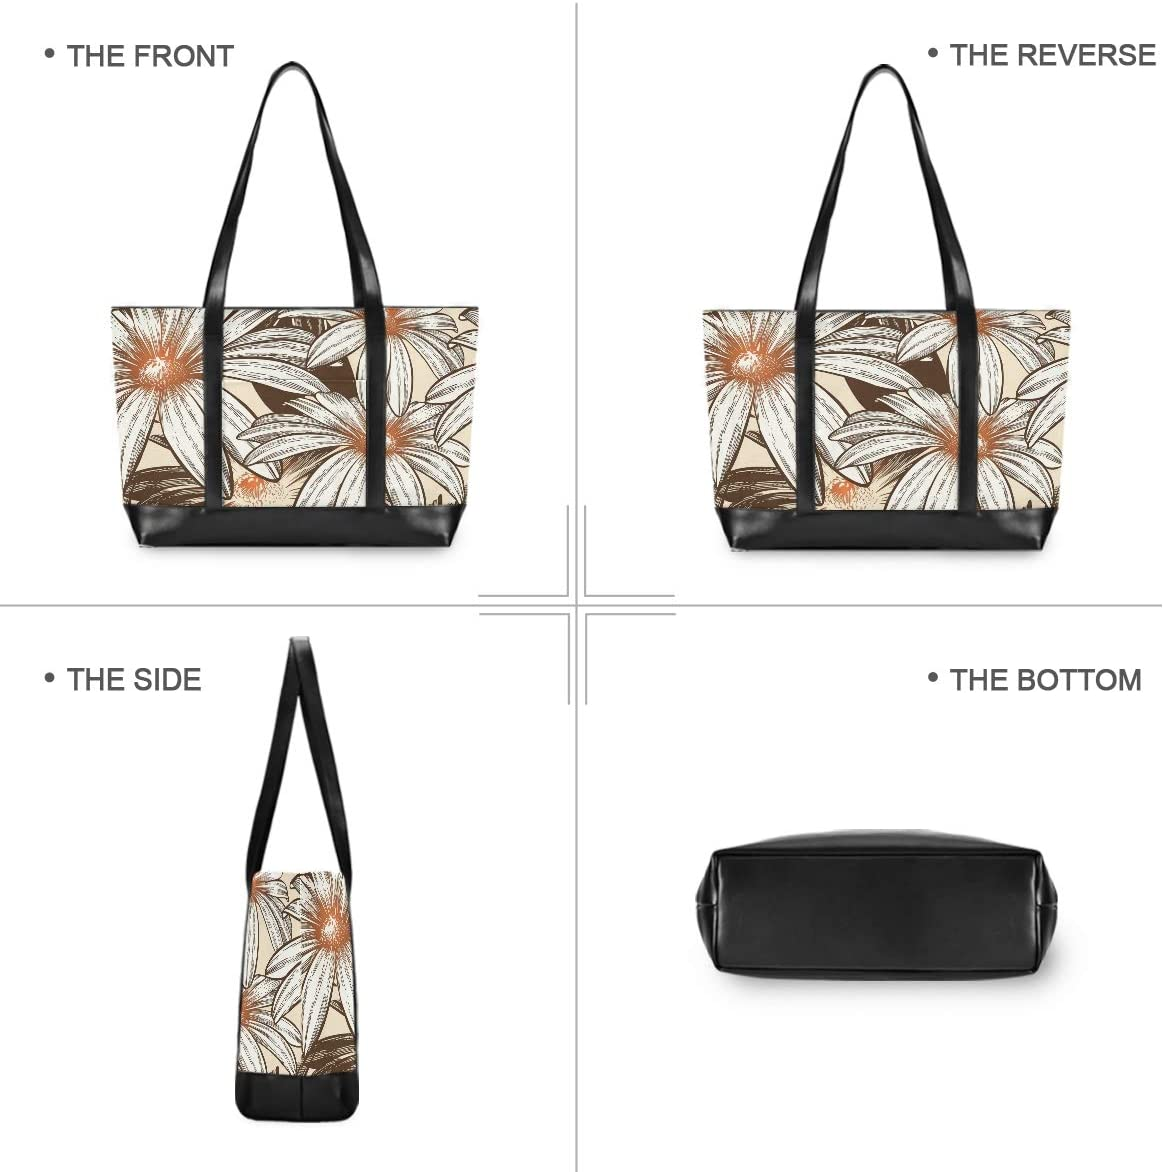 Vintage Flowers Daisy Laptop Tote Bag,Fits 15.6 Inch Laptop,Womens Lightweight Canvas Leather Tote Bag Shoulder Bag